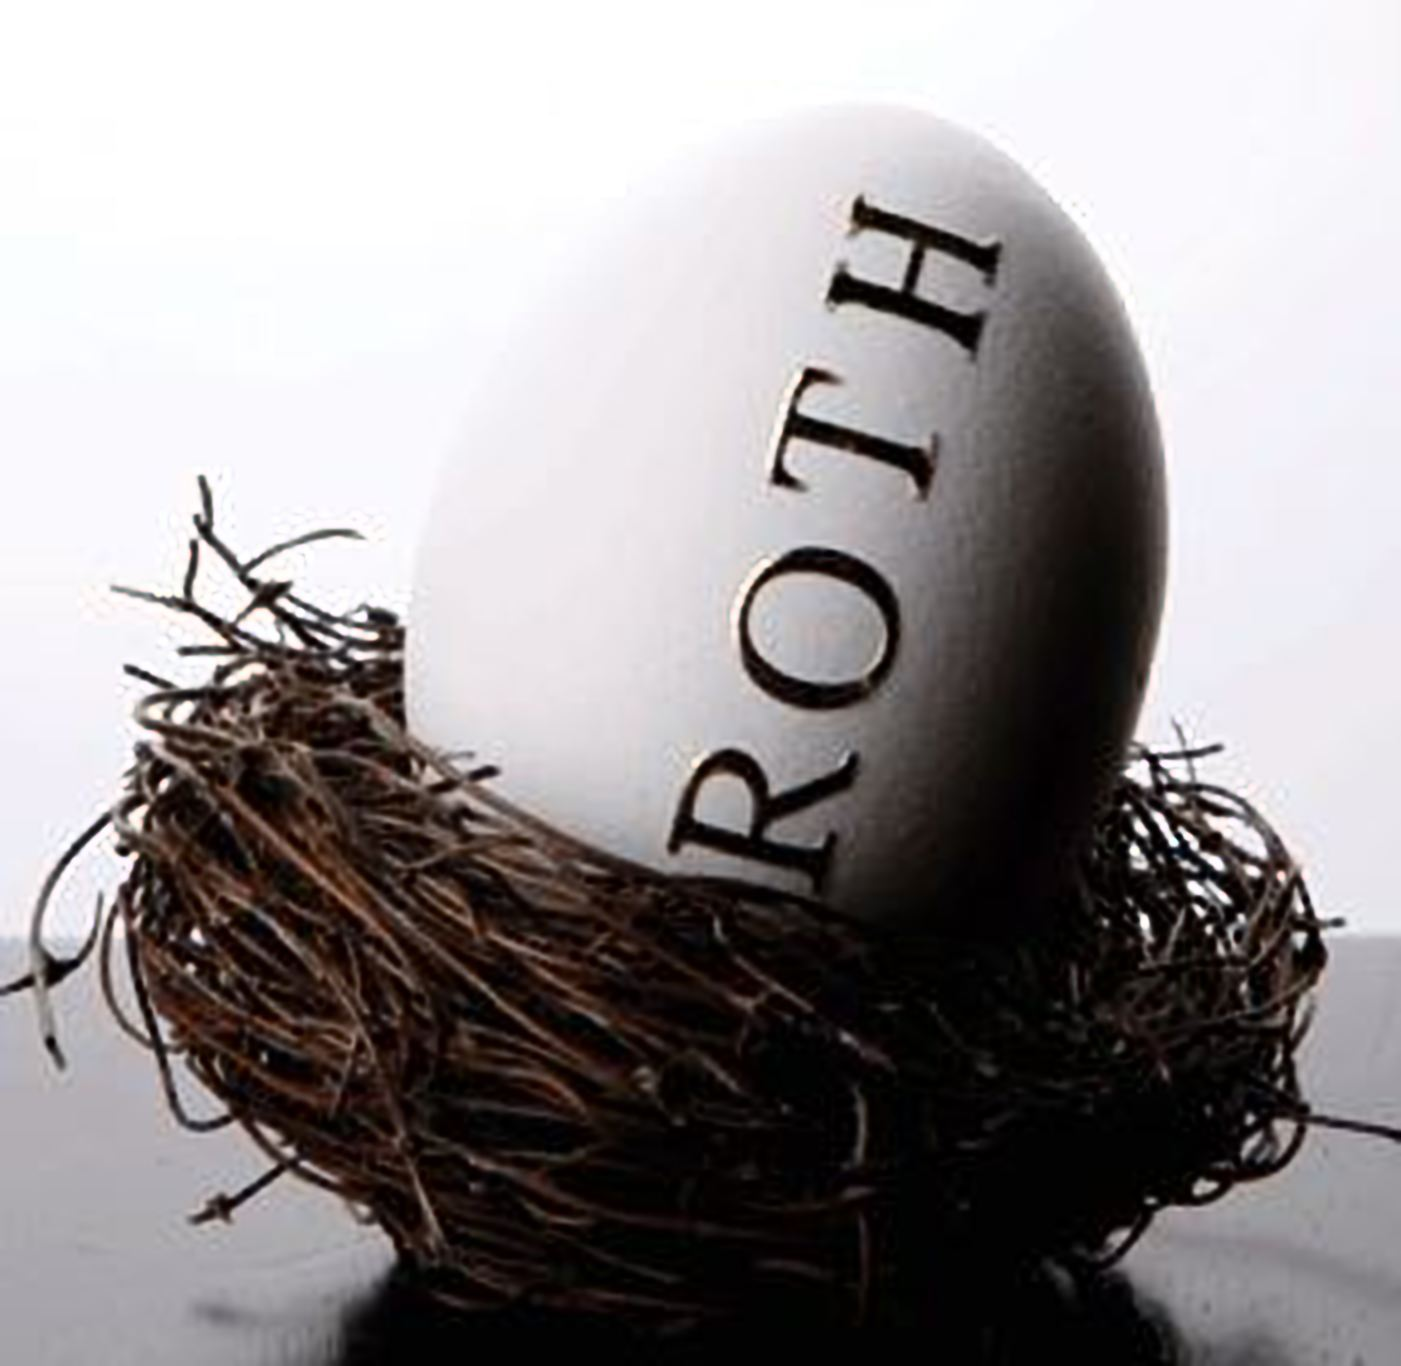 Choosing Between a Regular and Roth IRA When Living Abroad. What Are the Rules?